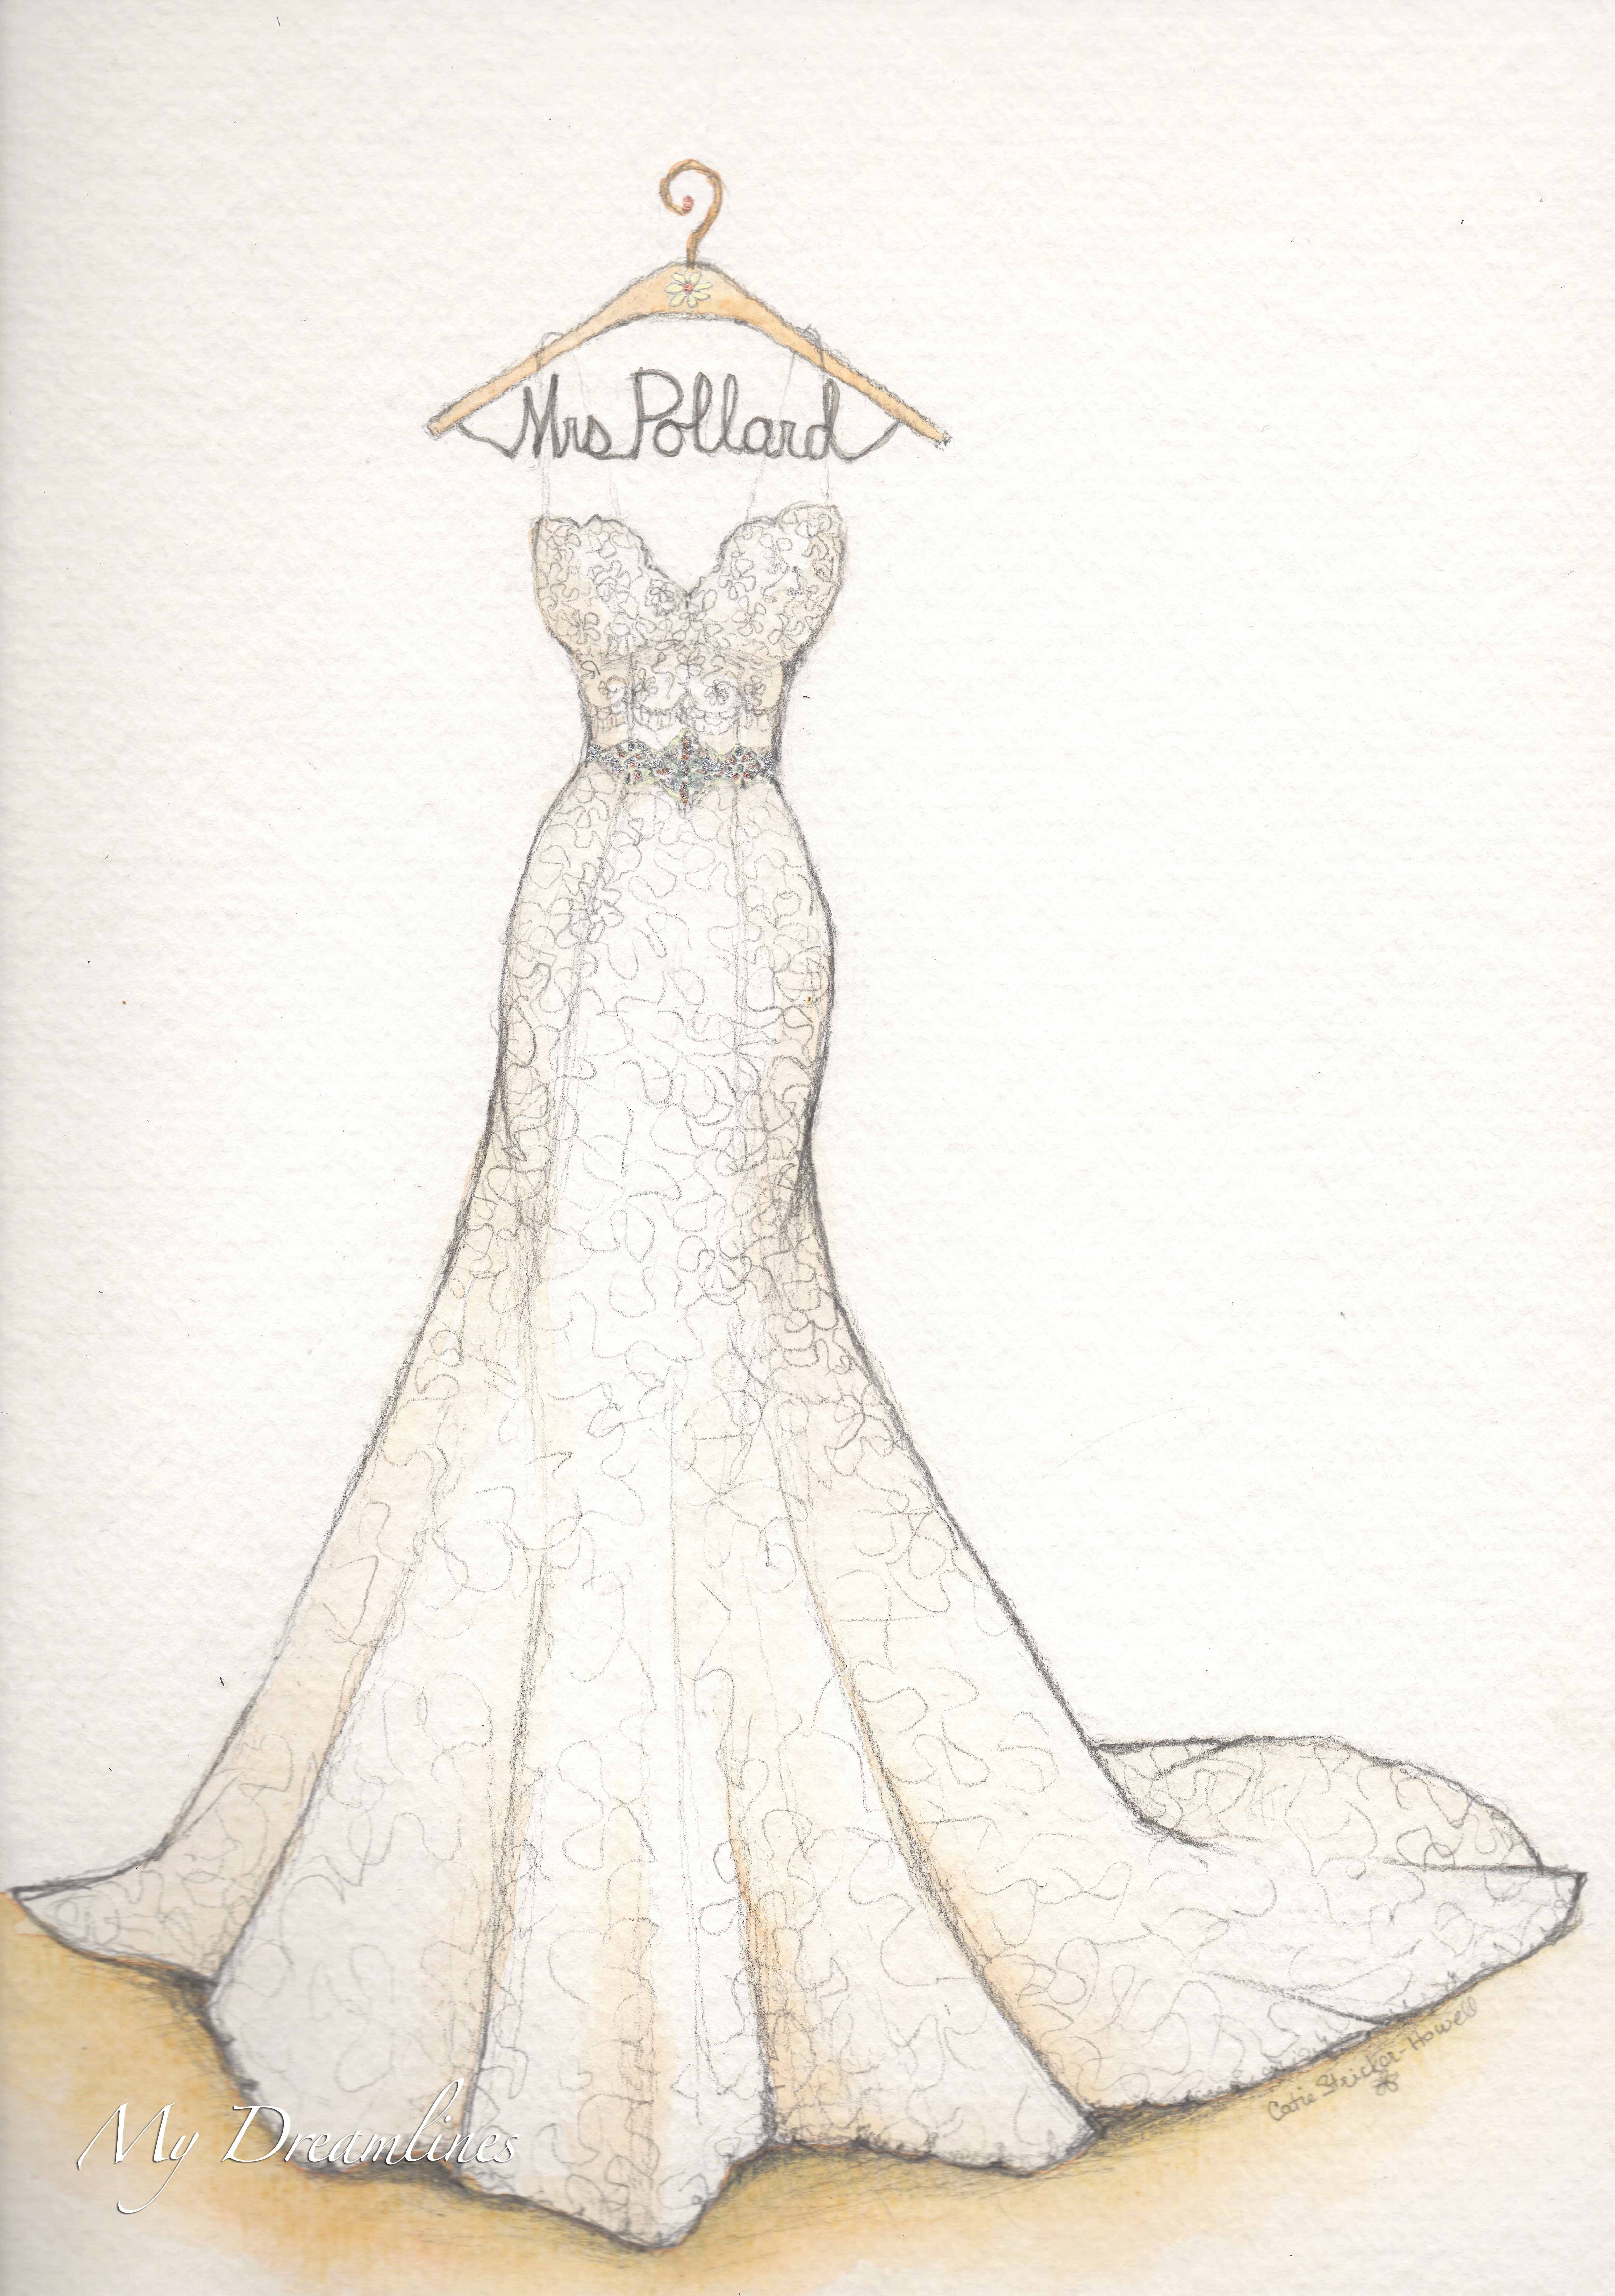 5476ea4fa32 Wedding dress sketch for first anniversary. Sketch by Catie Stricker-Howell   catiethesketchlady